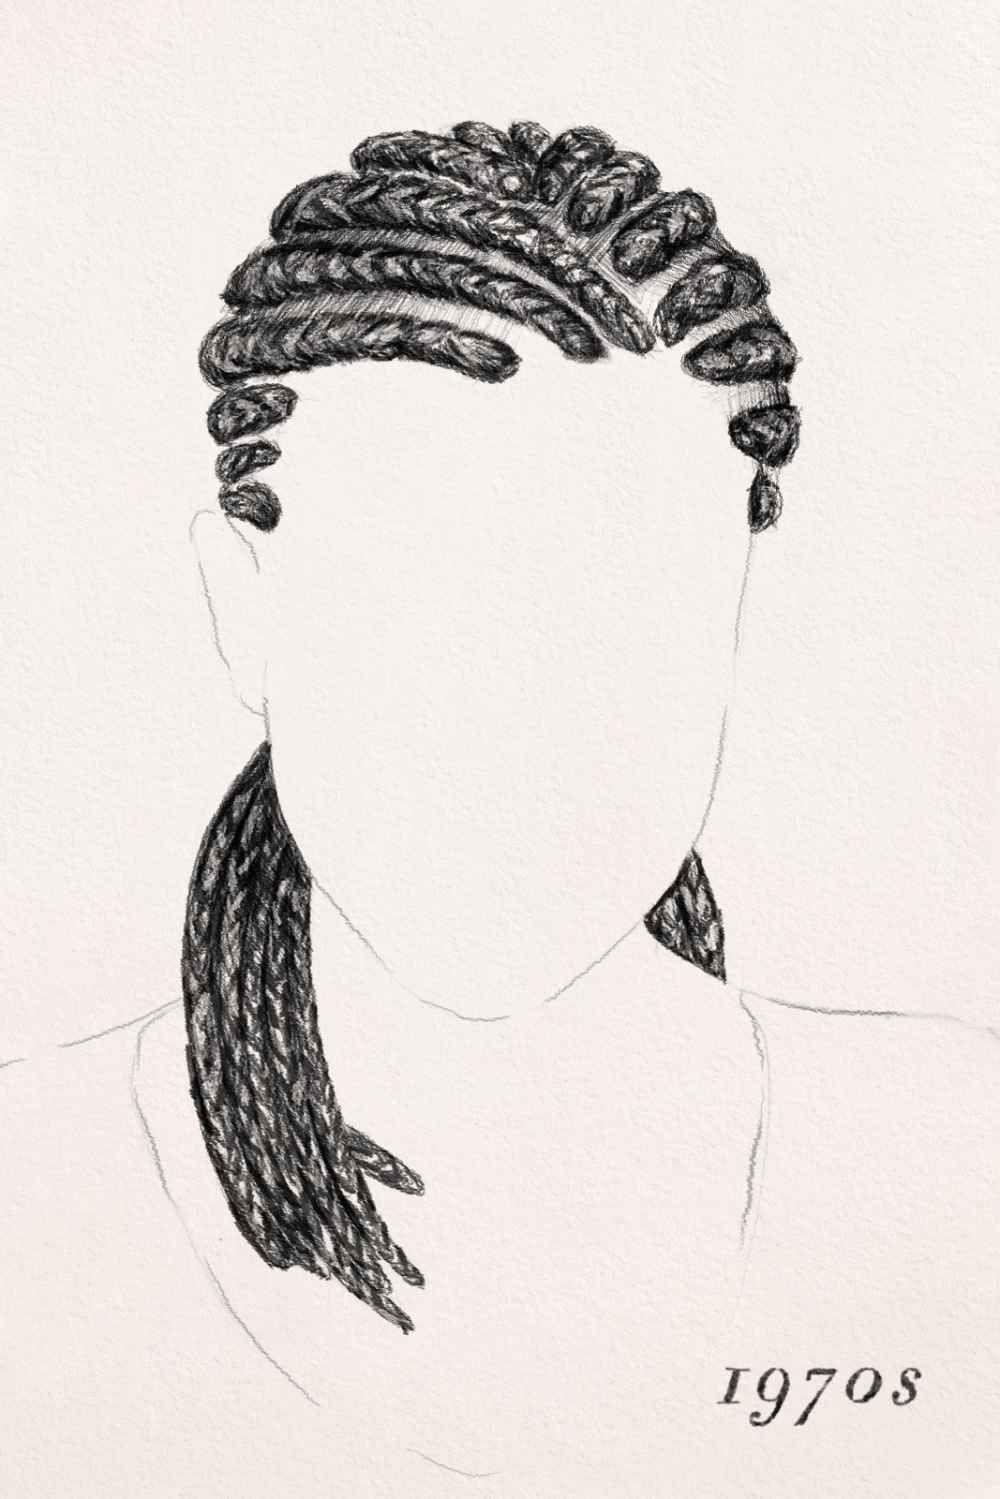 How To Draw Cornrows : cornrows, Wild,, Amazing,, History, Braids, Braids,, Hair,, Black, Magic